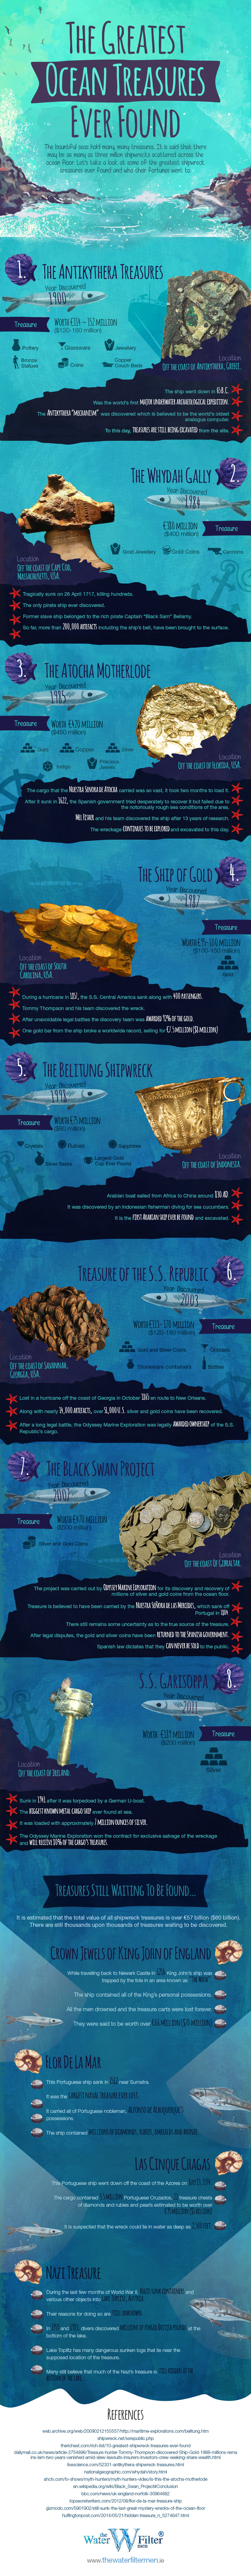 The-Greatest-Ocean-Treasures-Ever-Found-Infographic.jpg